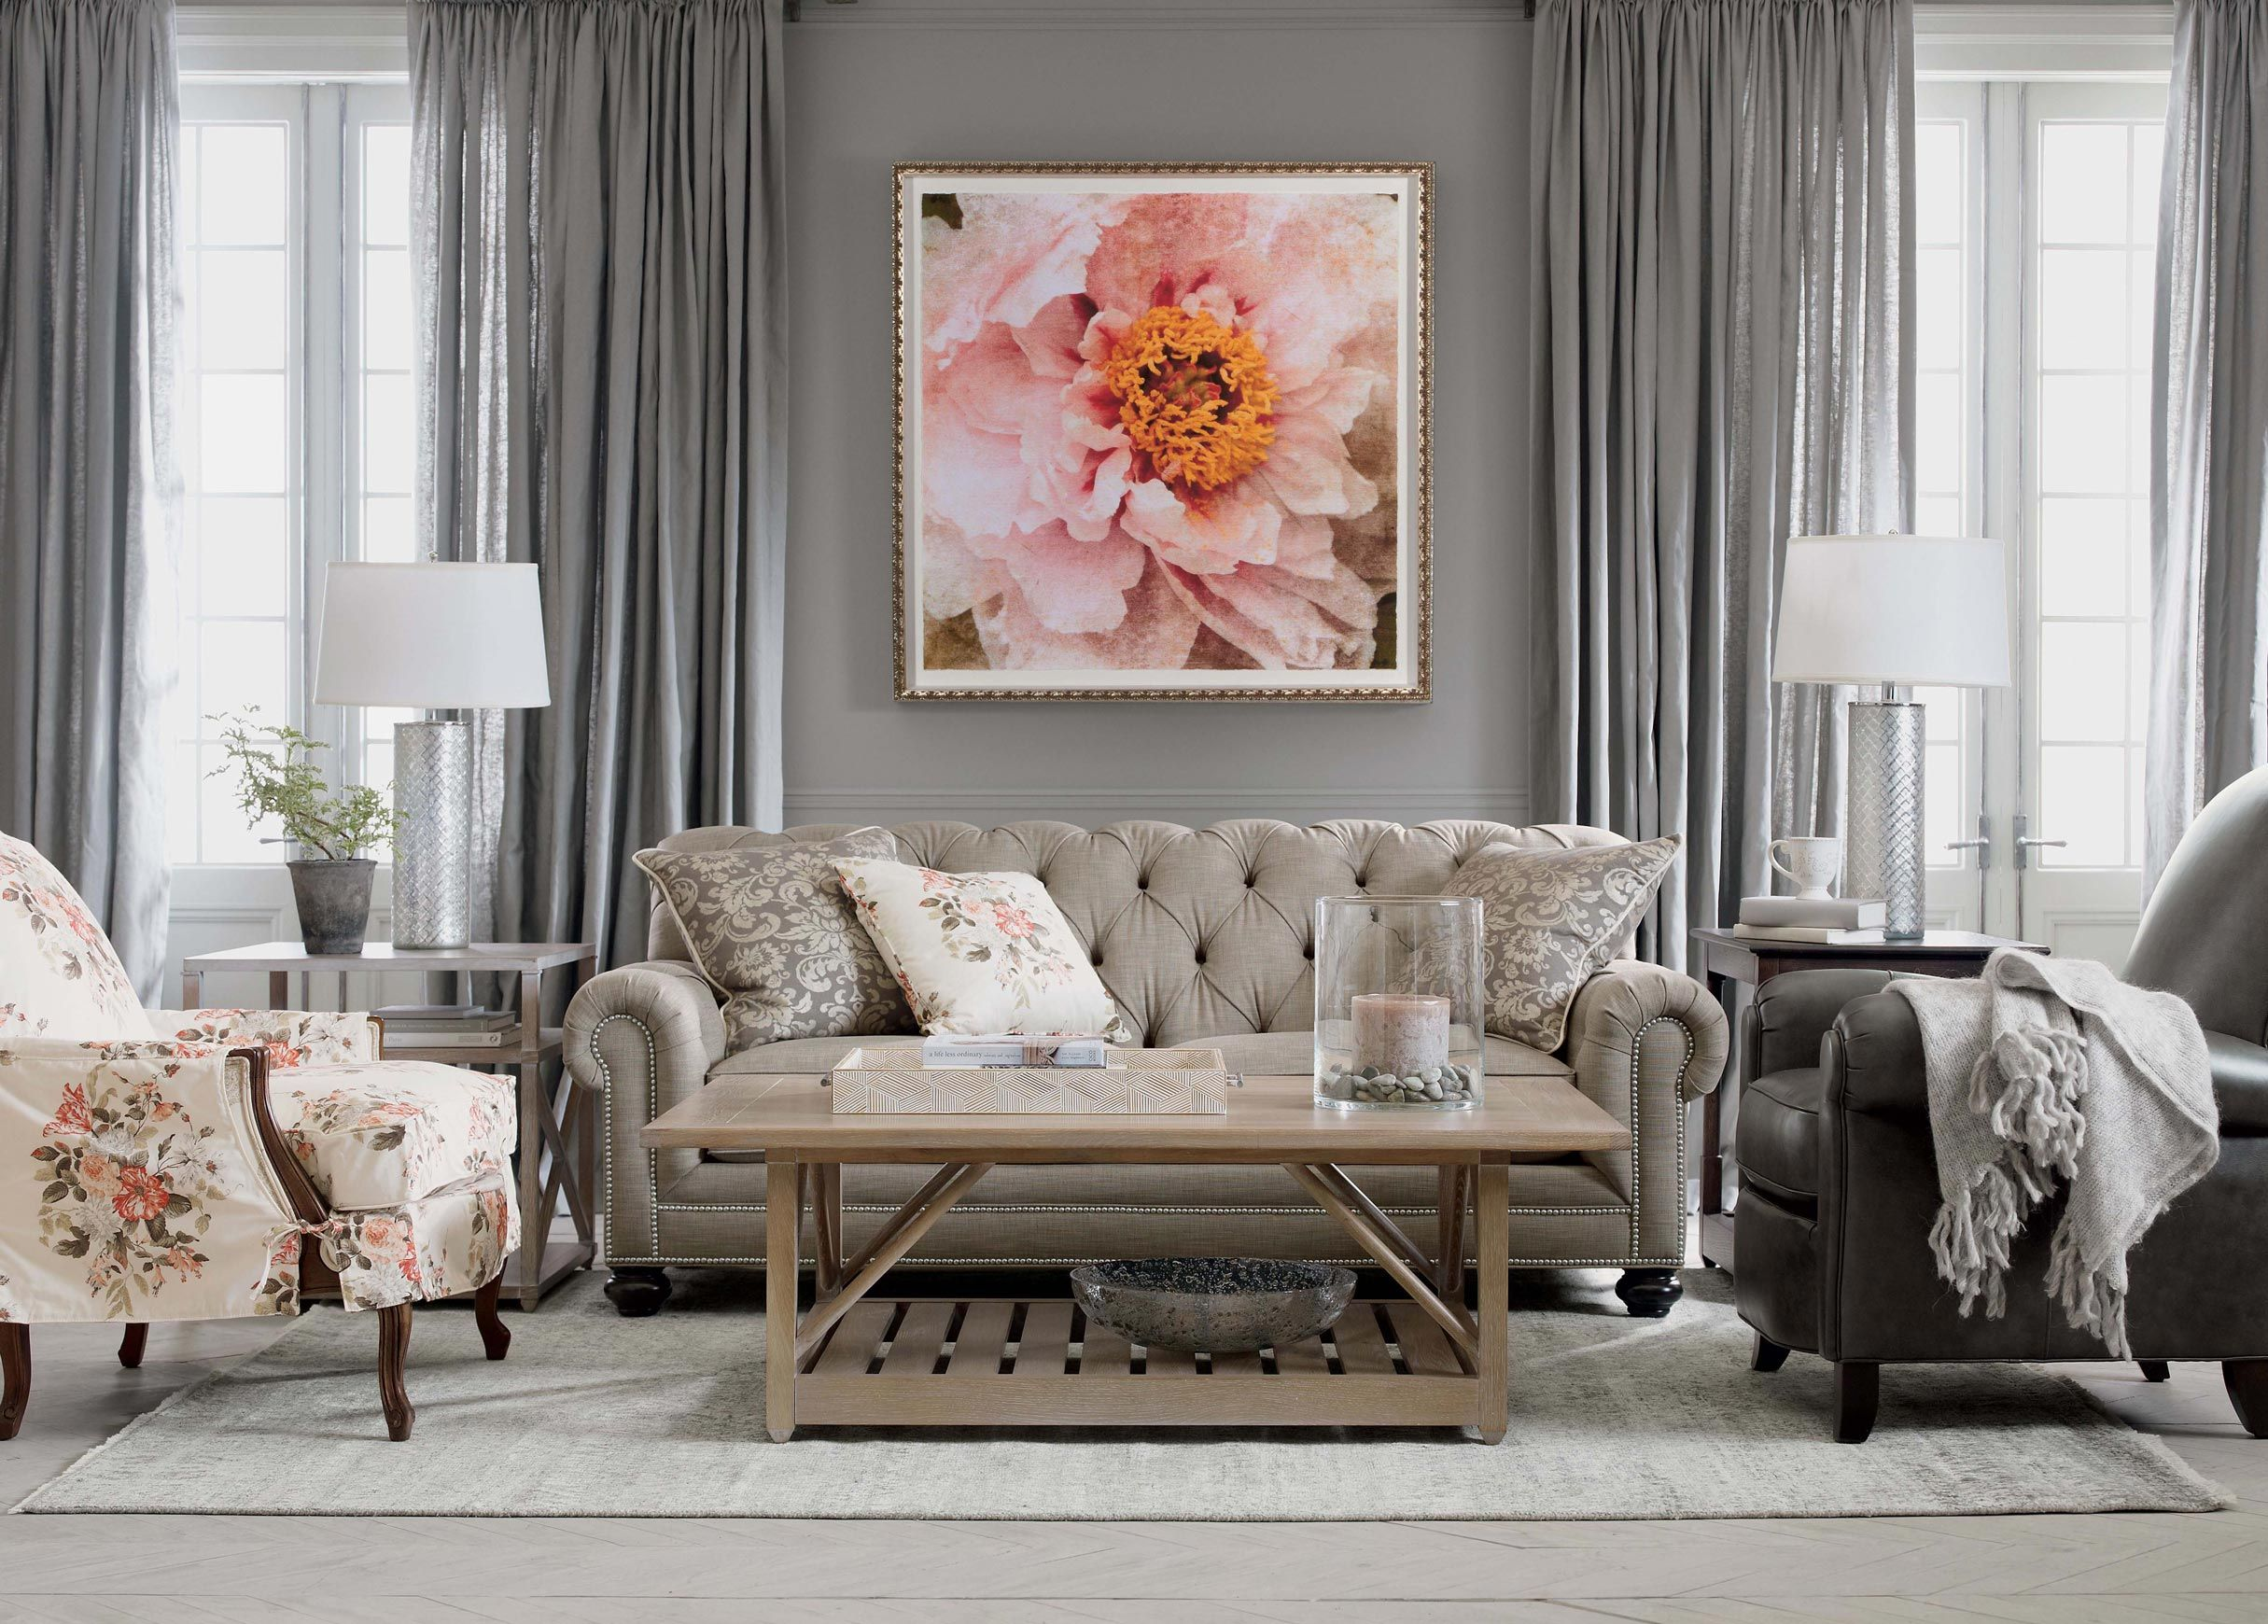 surprising ethan allen living room design ideas pictures remodel decor | Sitting Pretty Living Room - SHOP ETHAN ALLEN OMAHA NOW ...